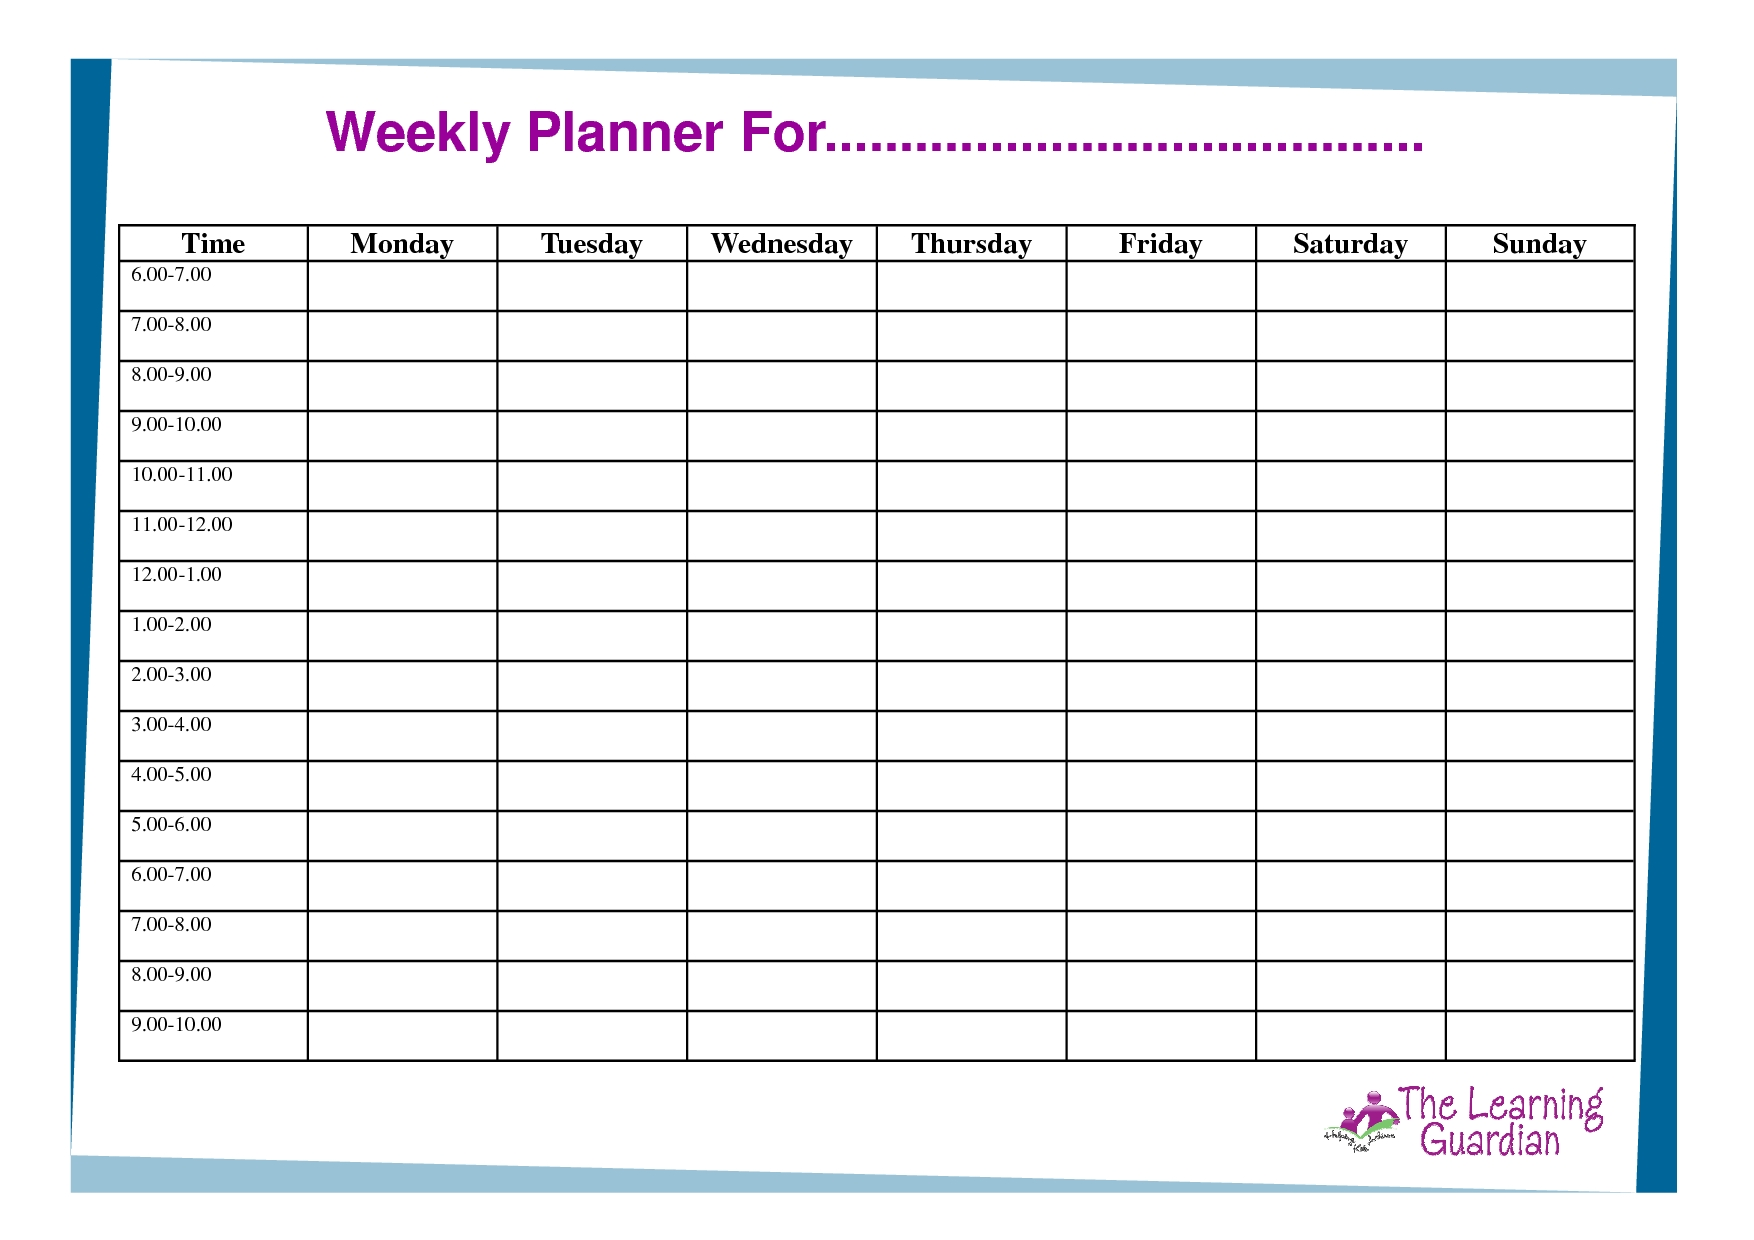 Free Printable Weekly Calendar Templates | Weekly Planner throughout Monday To Friday Calendar With Hours